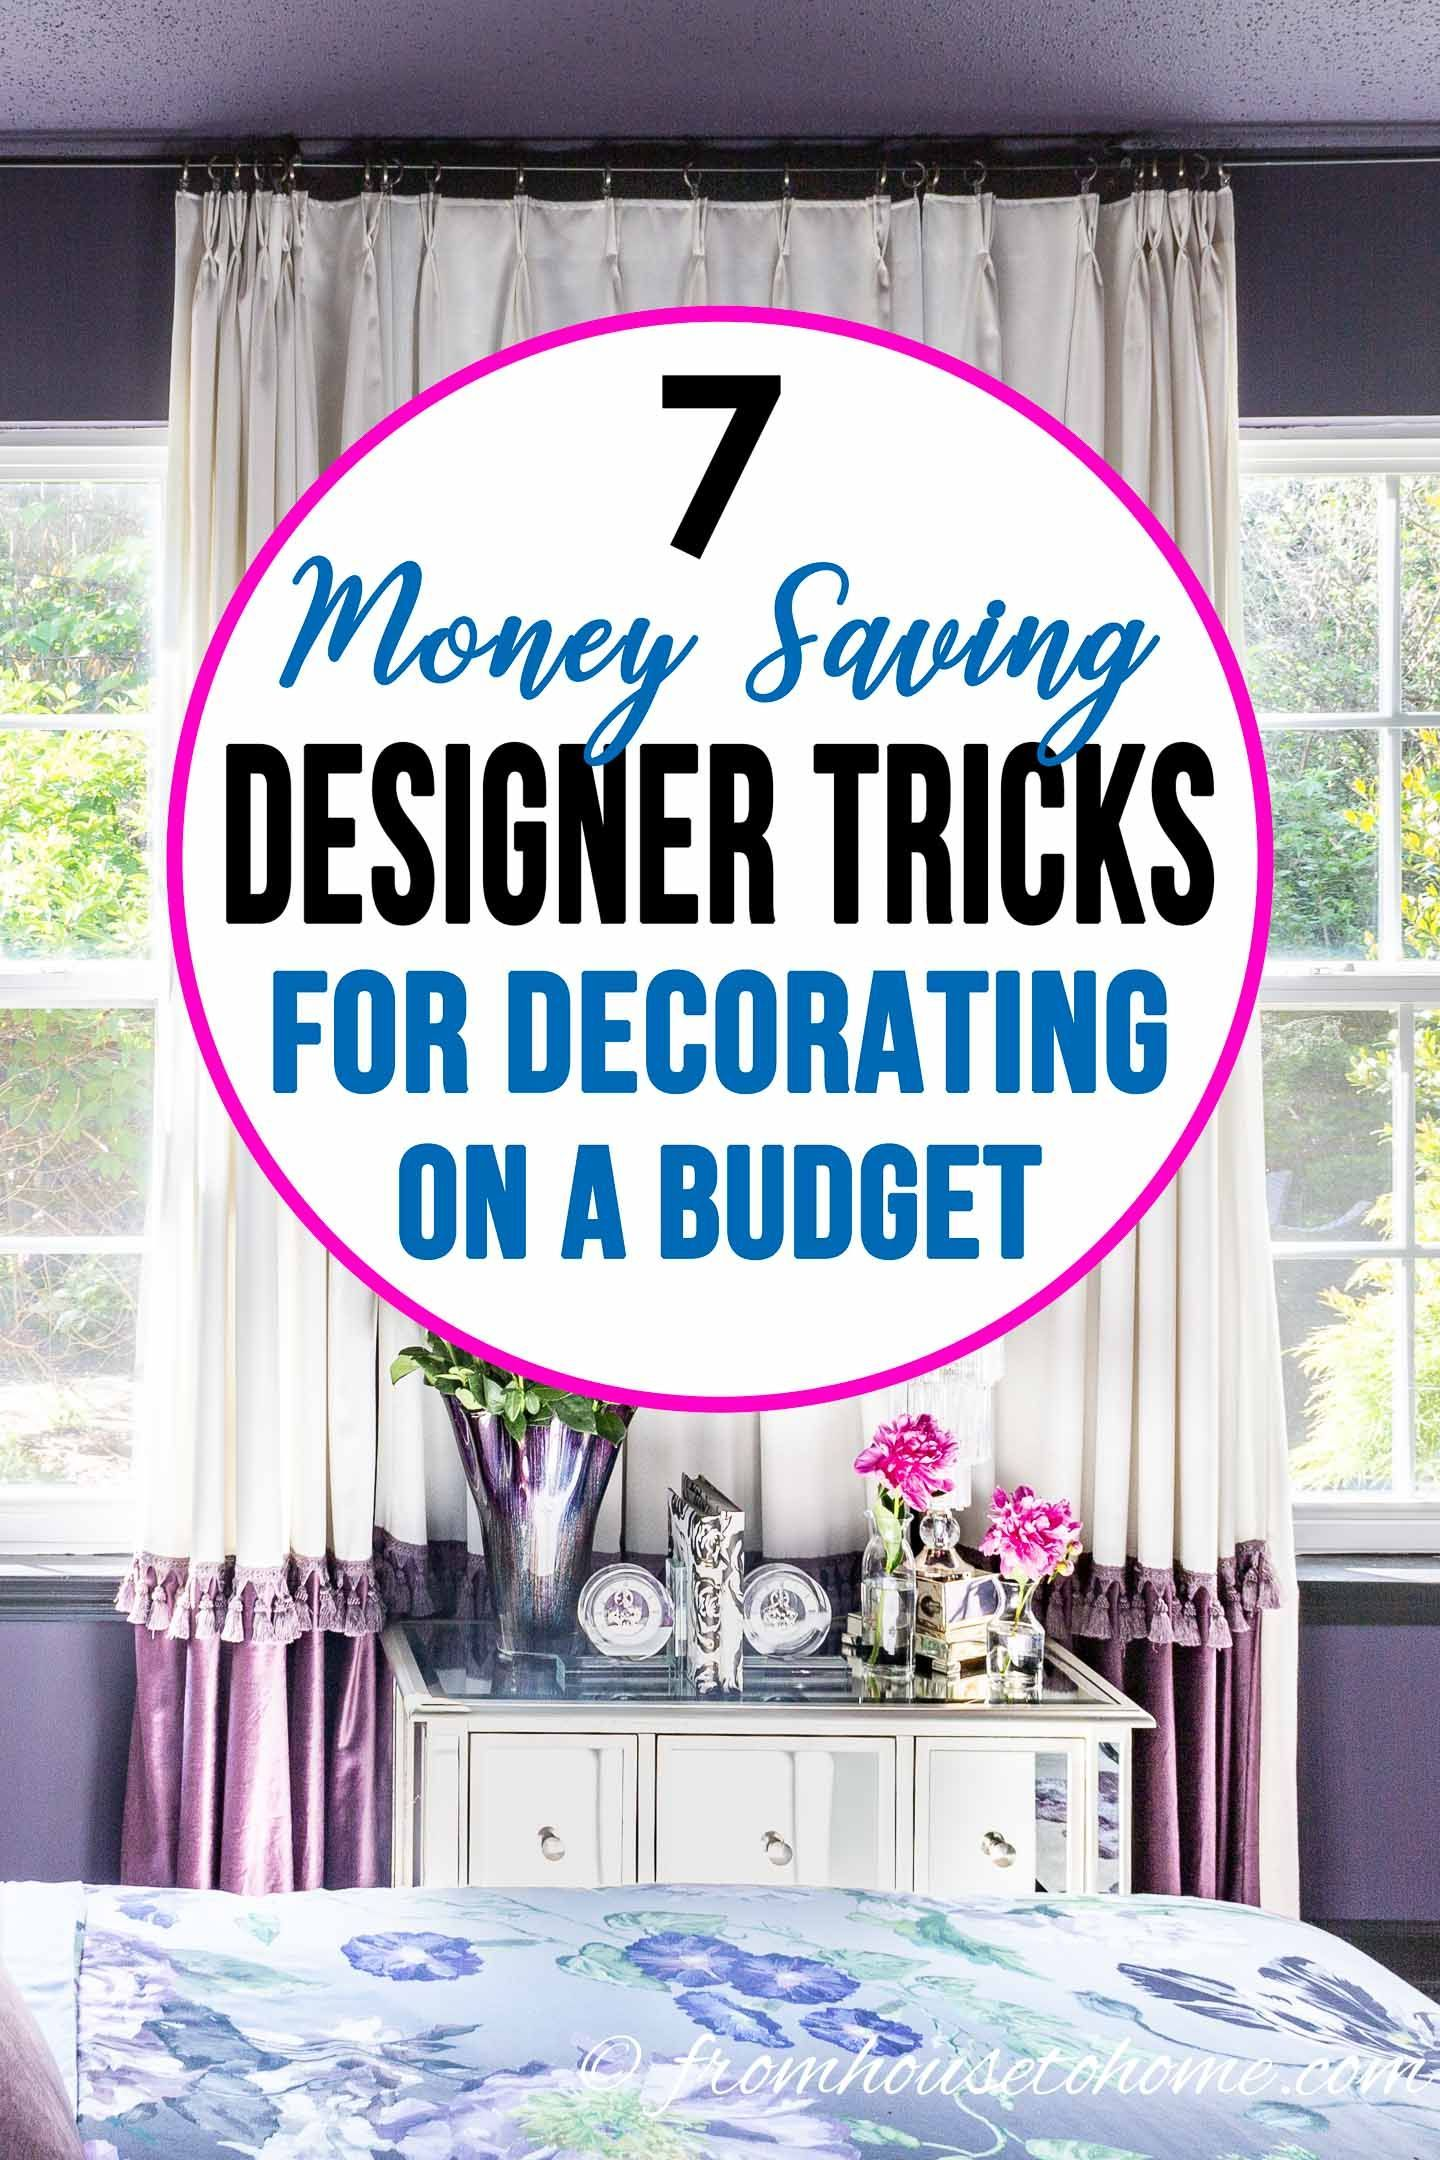 How To Decorate Your Home On A Budget Decorating On A Budget